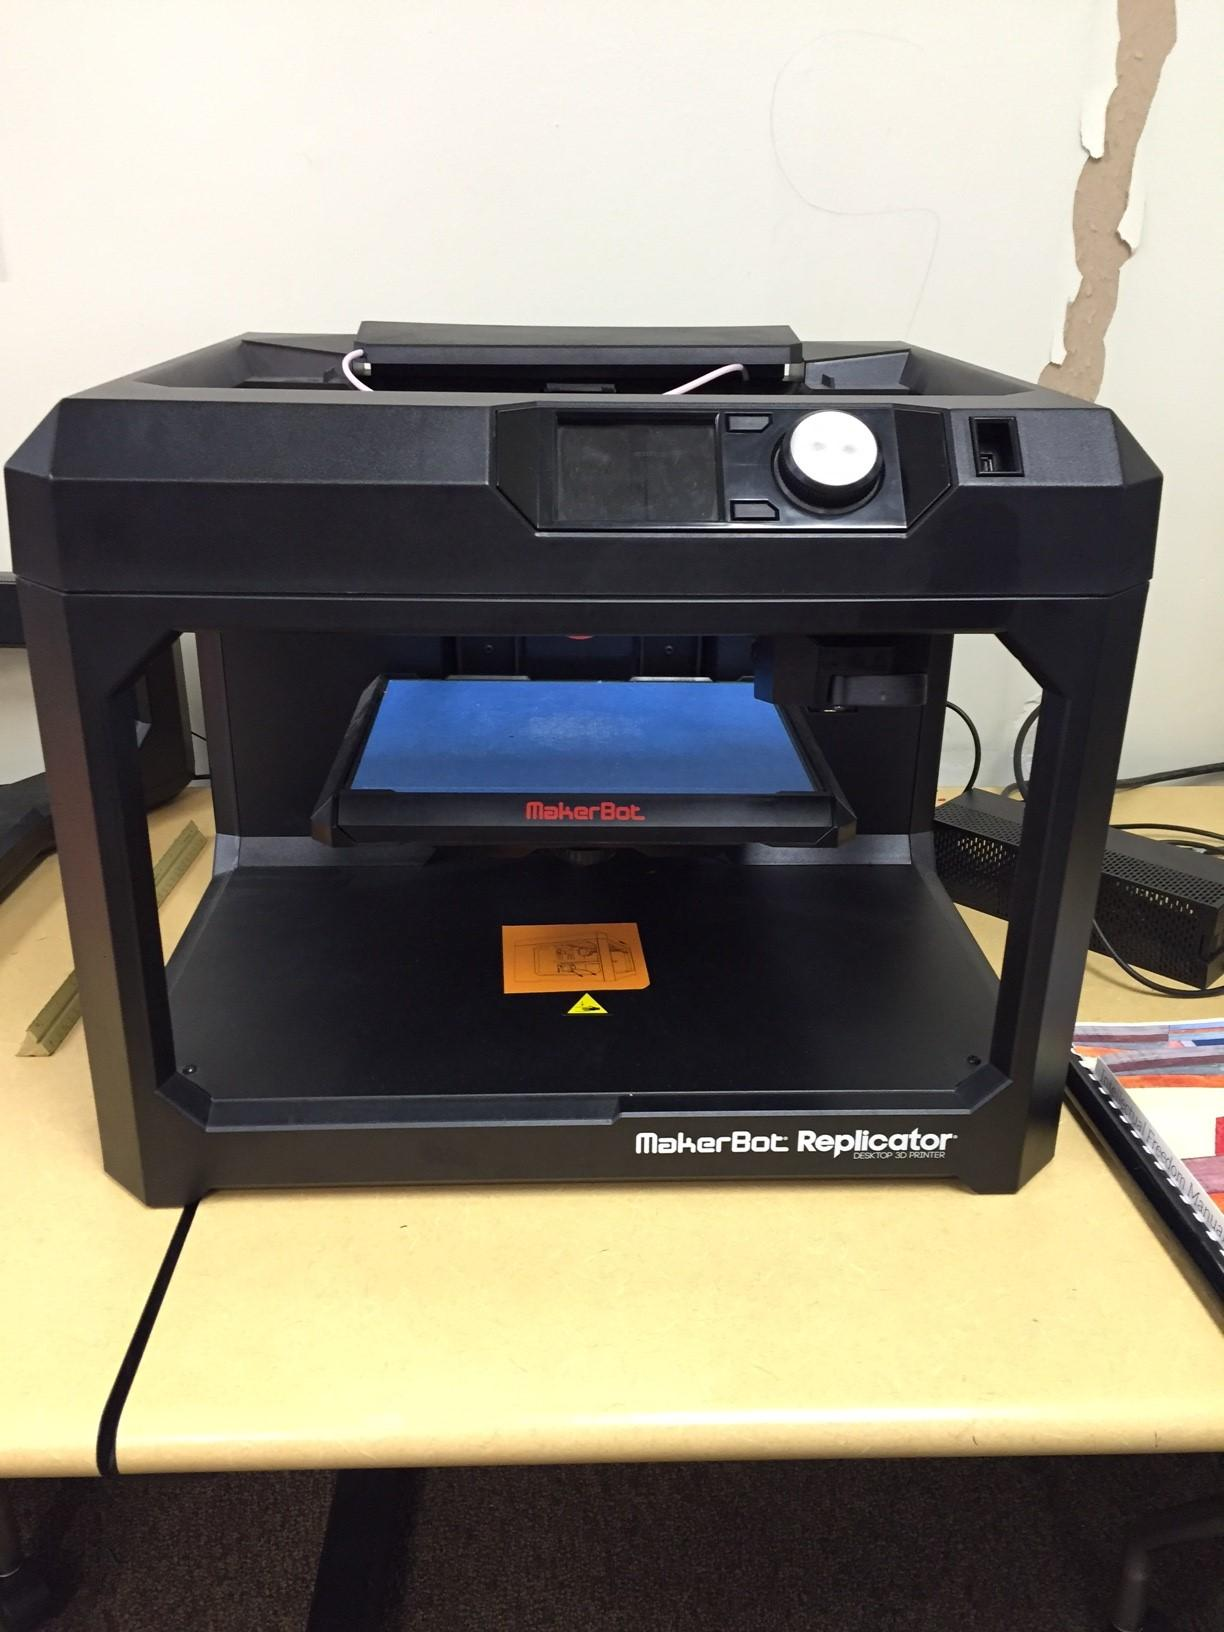 Shown above is the Maker Bot 3D printer machine in the displayed in the media center